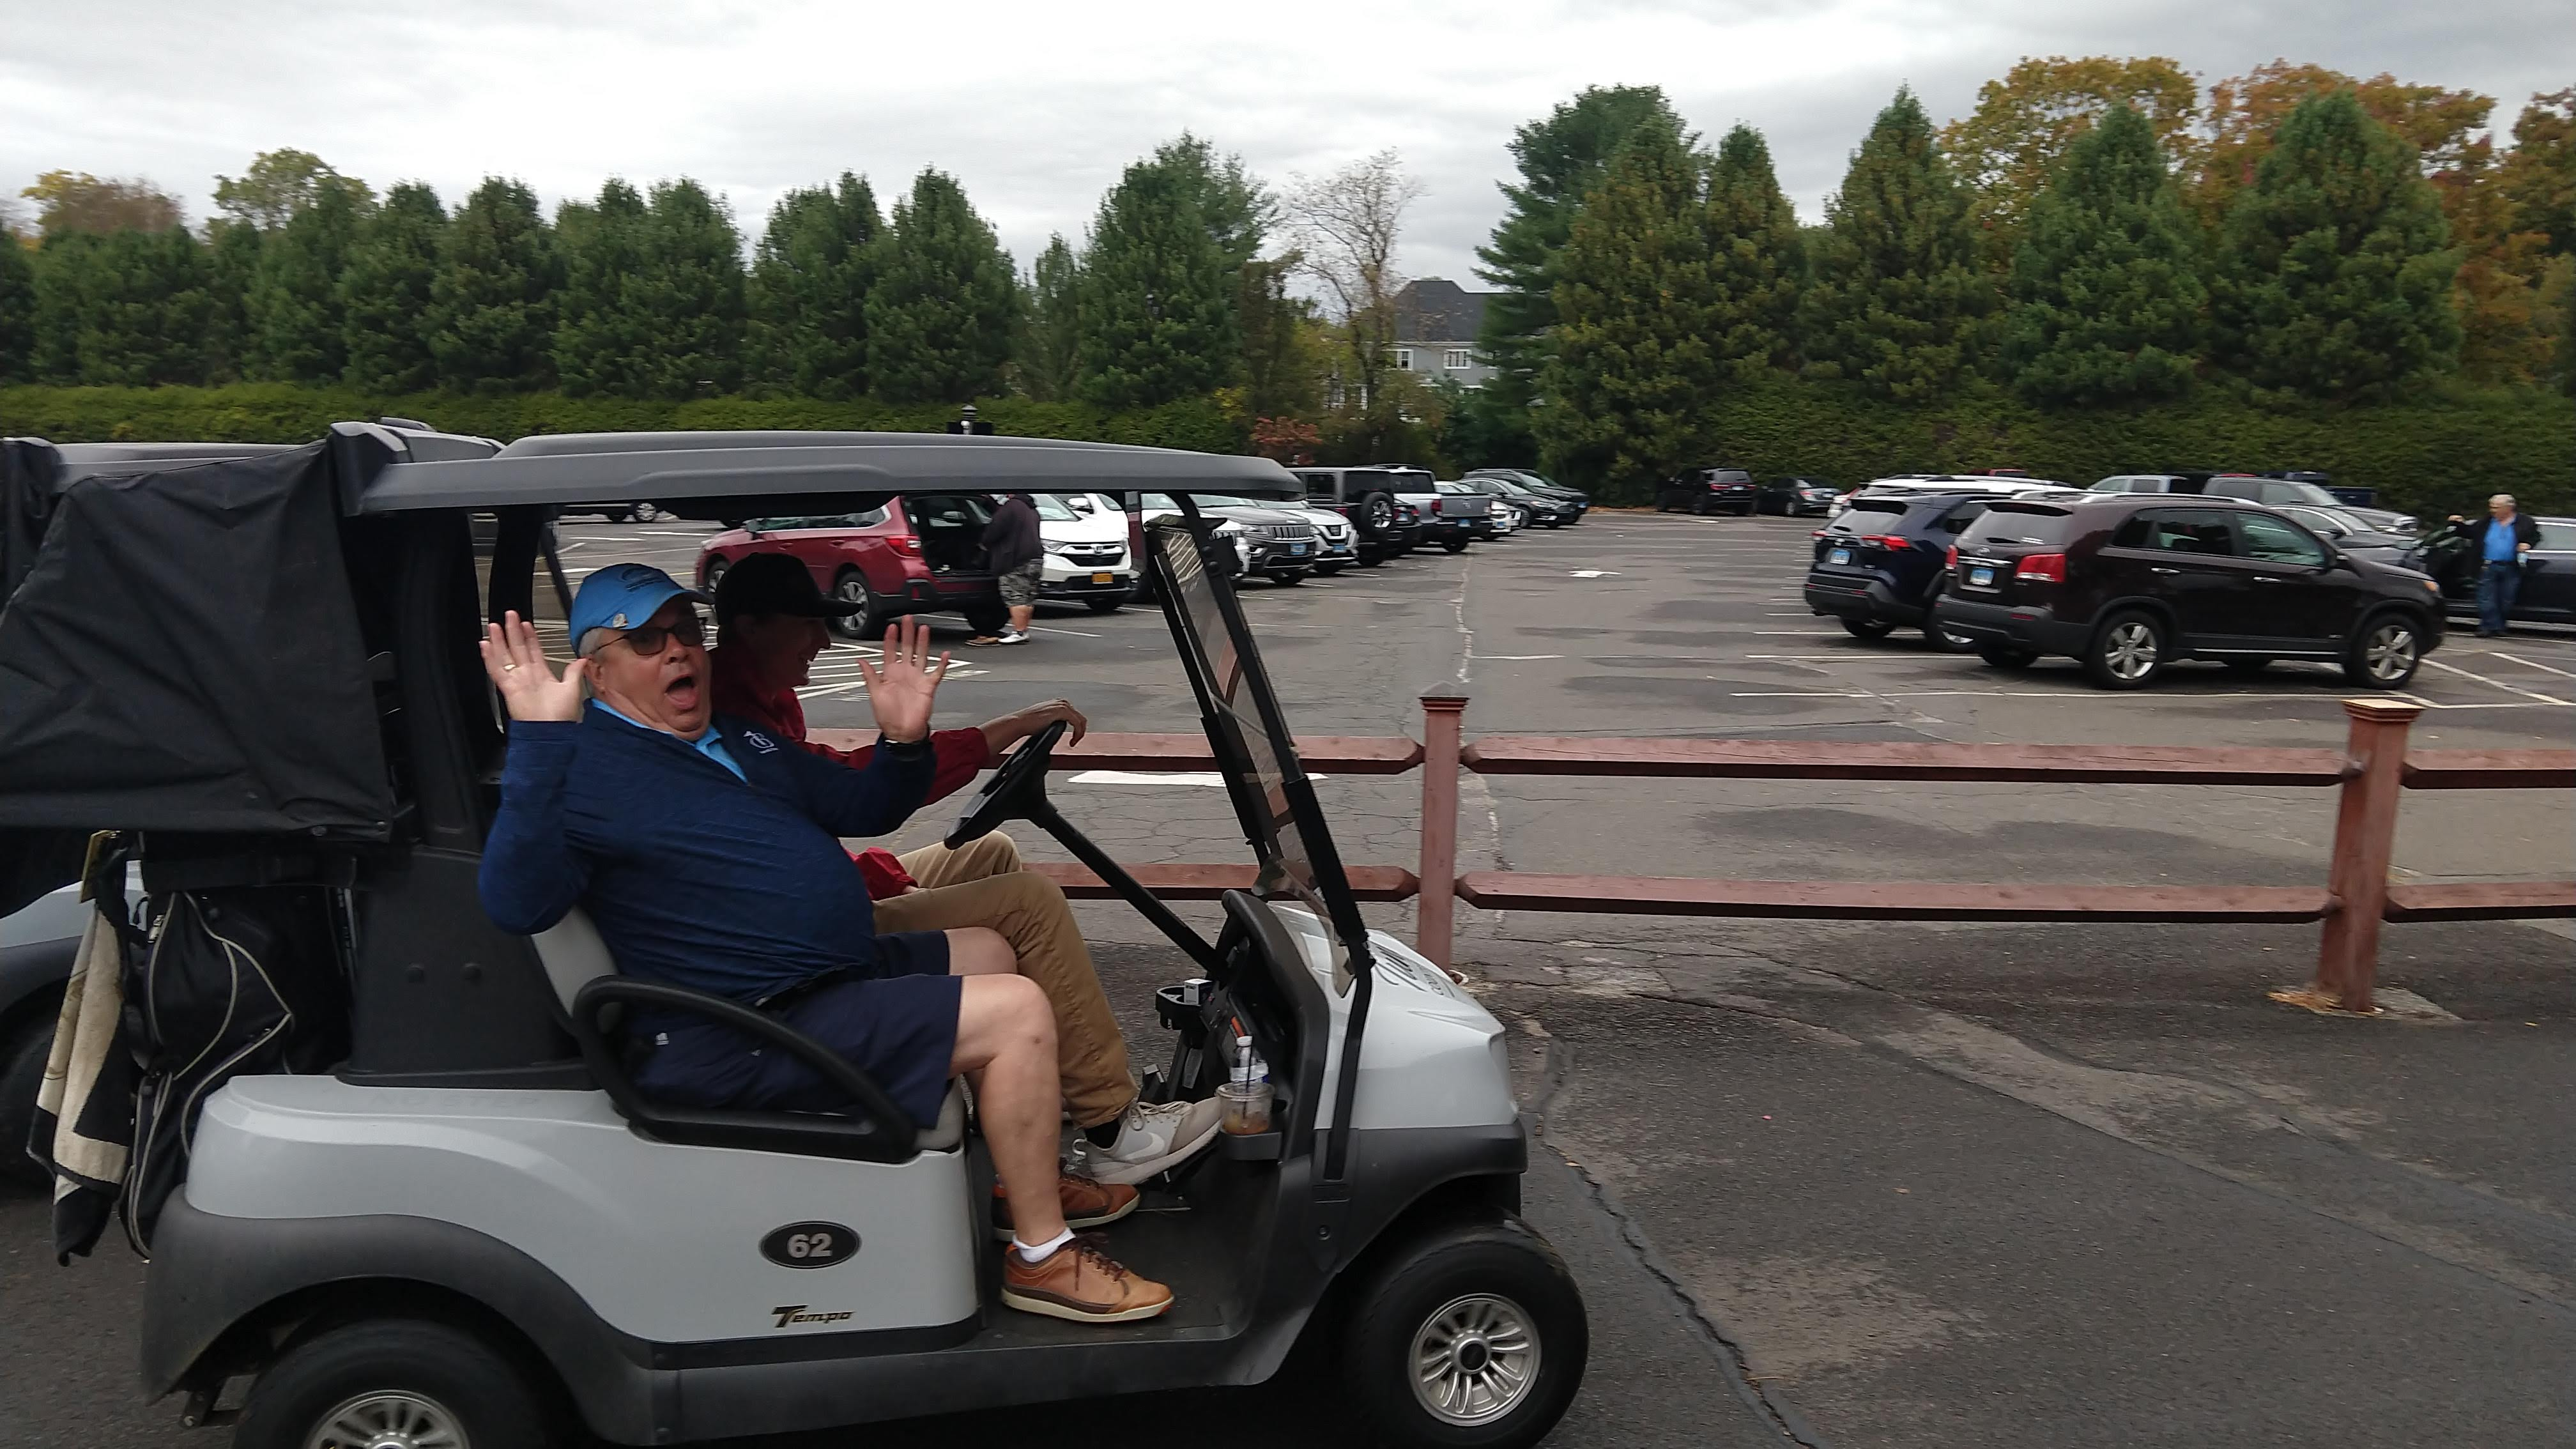 Ron-in-cart